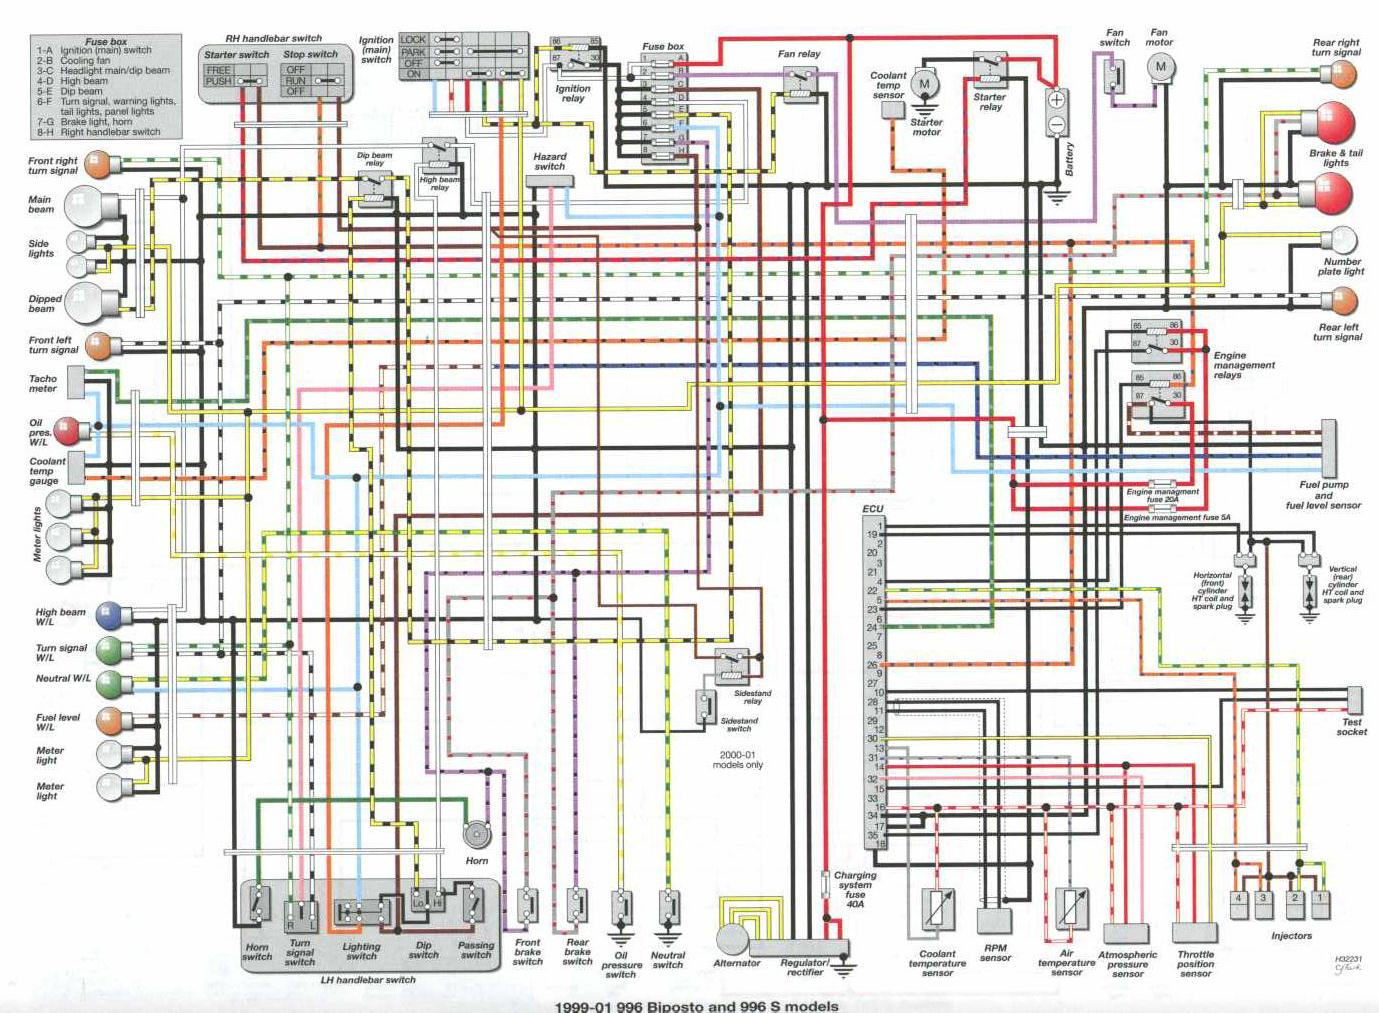 Wiring Diagram Ducati Monster 620 7 Way Wiring Diagram For Wiring Diagram Schematics